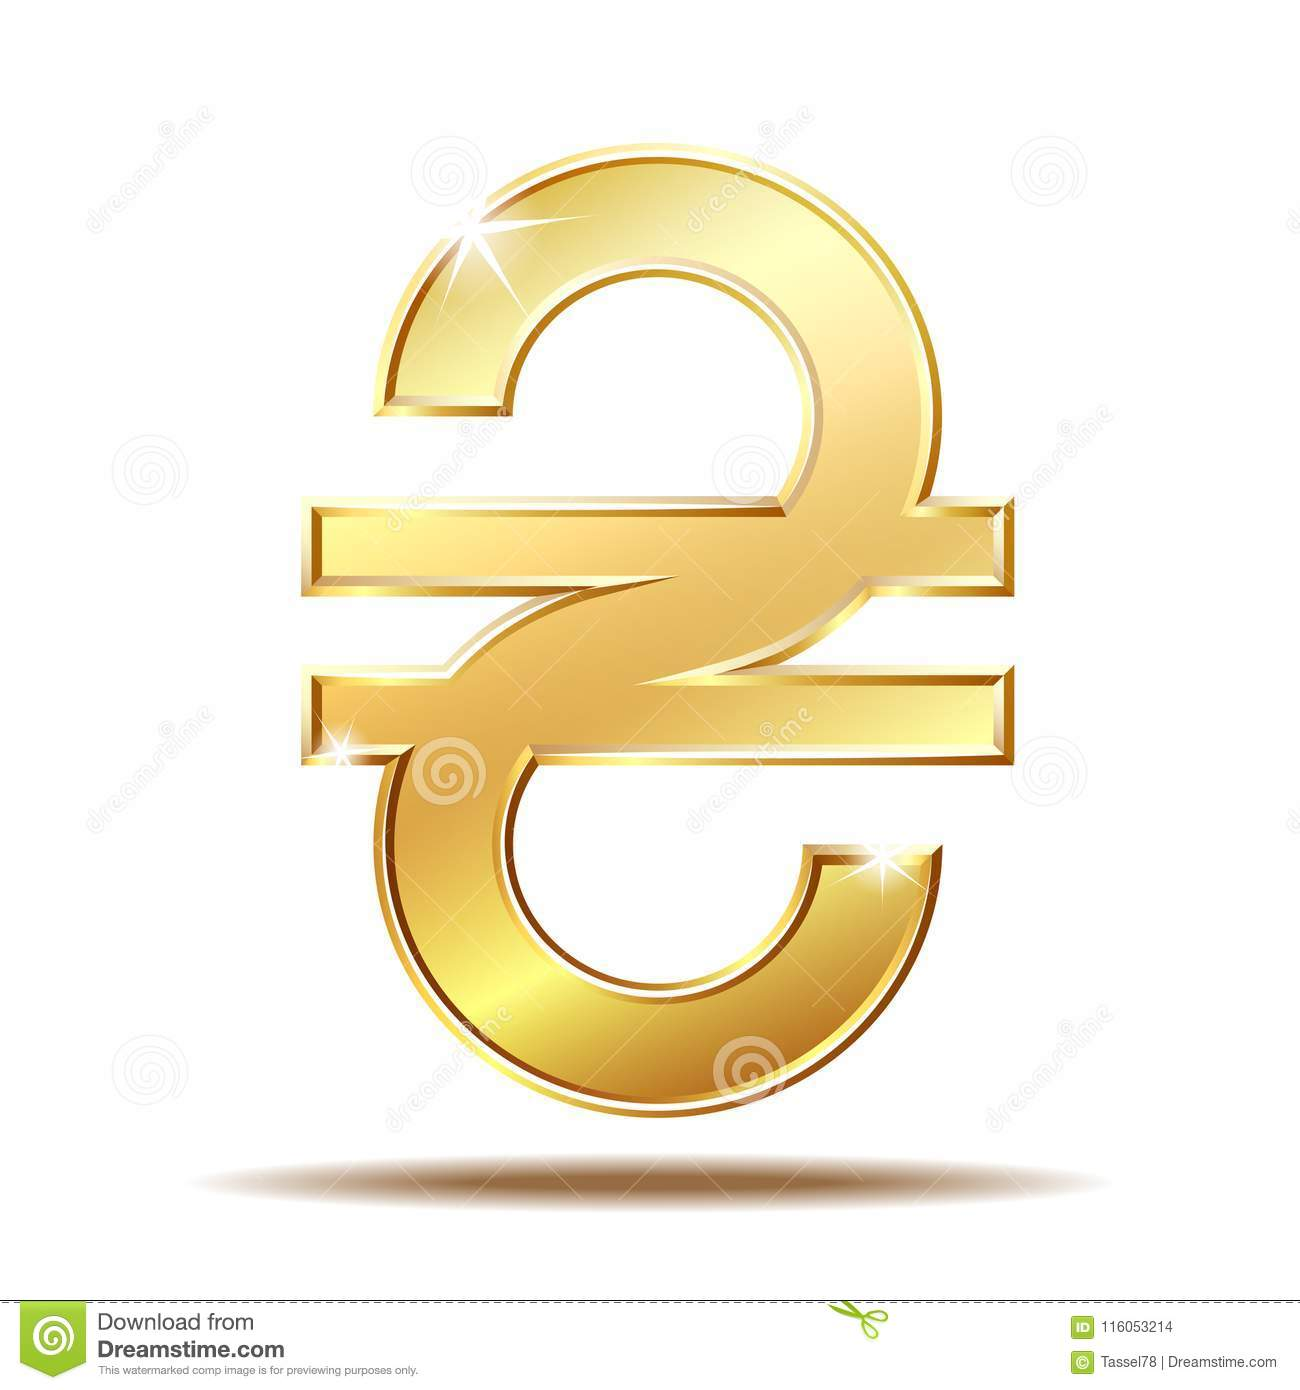 Shiny Gold Ukrainian Hryvnia Currency Sign Stock Vector